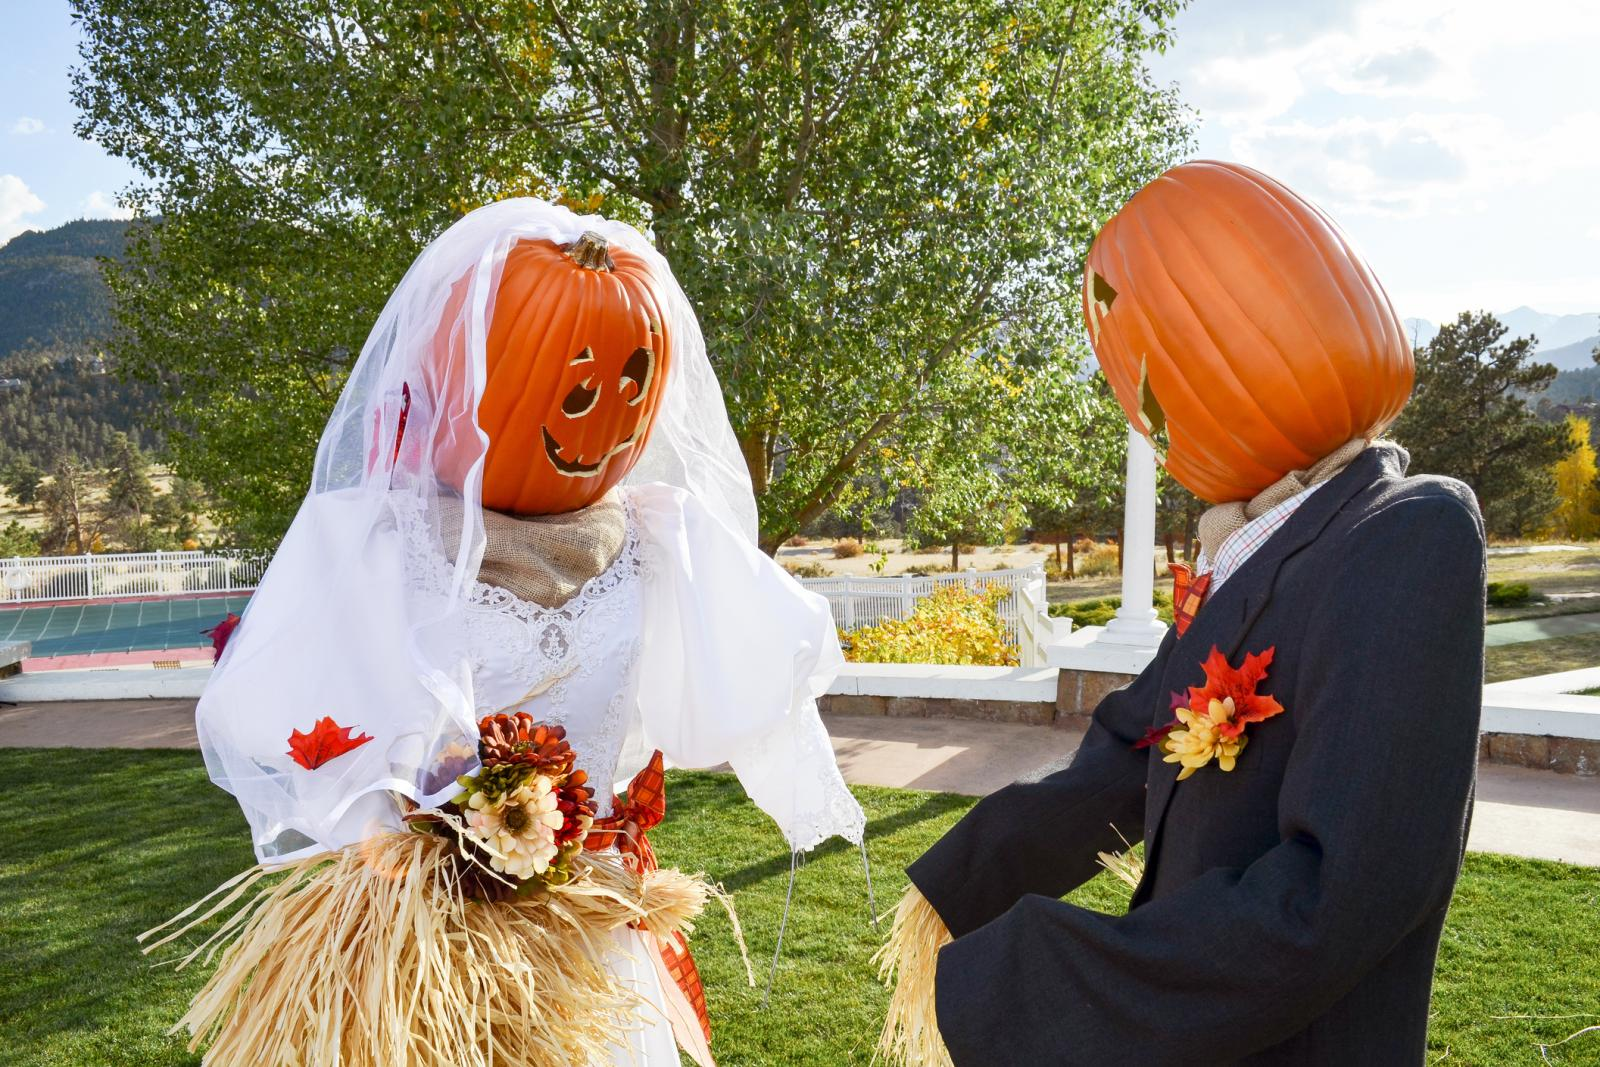 Scarecrows Dressed As Bride And Groom